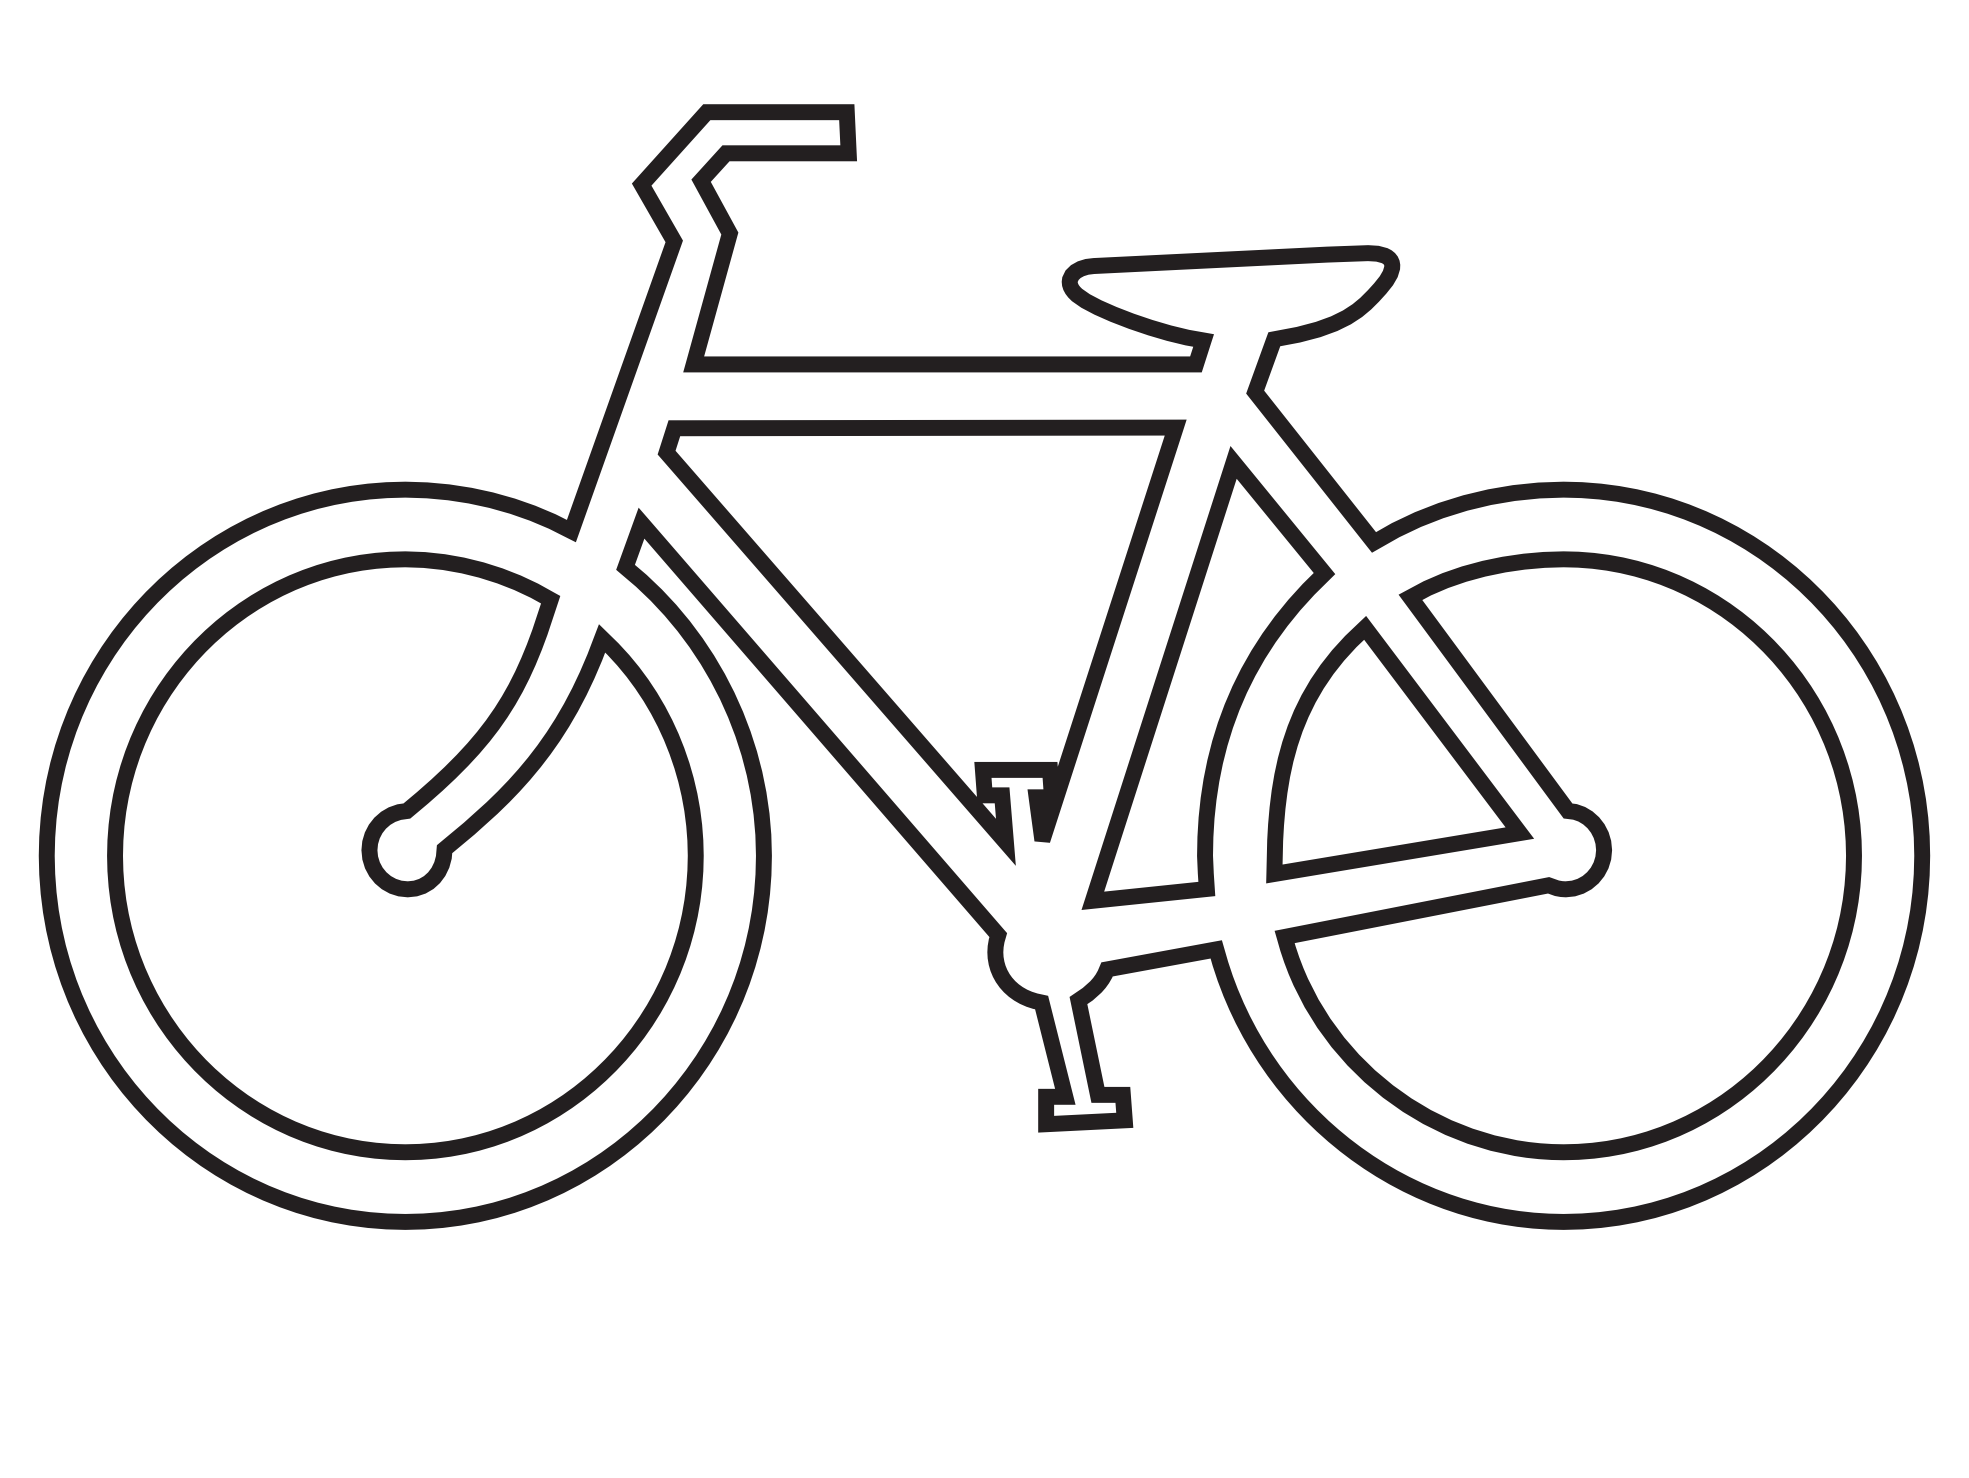 Portfolio drawing bicycle. Collection of free black